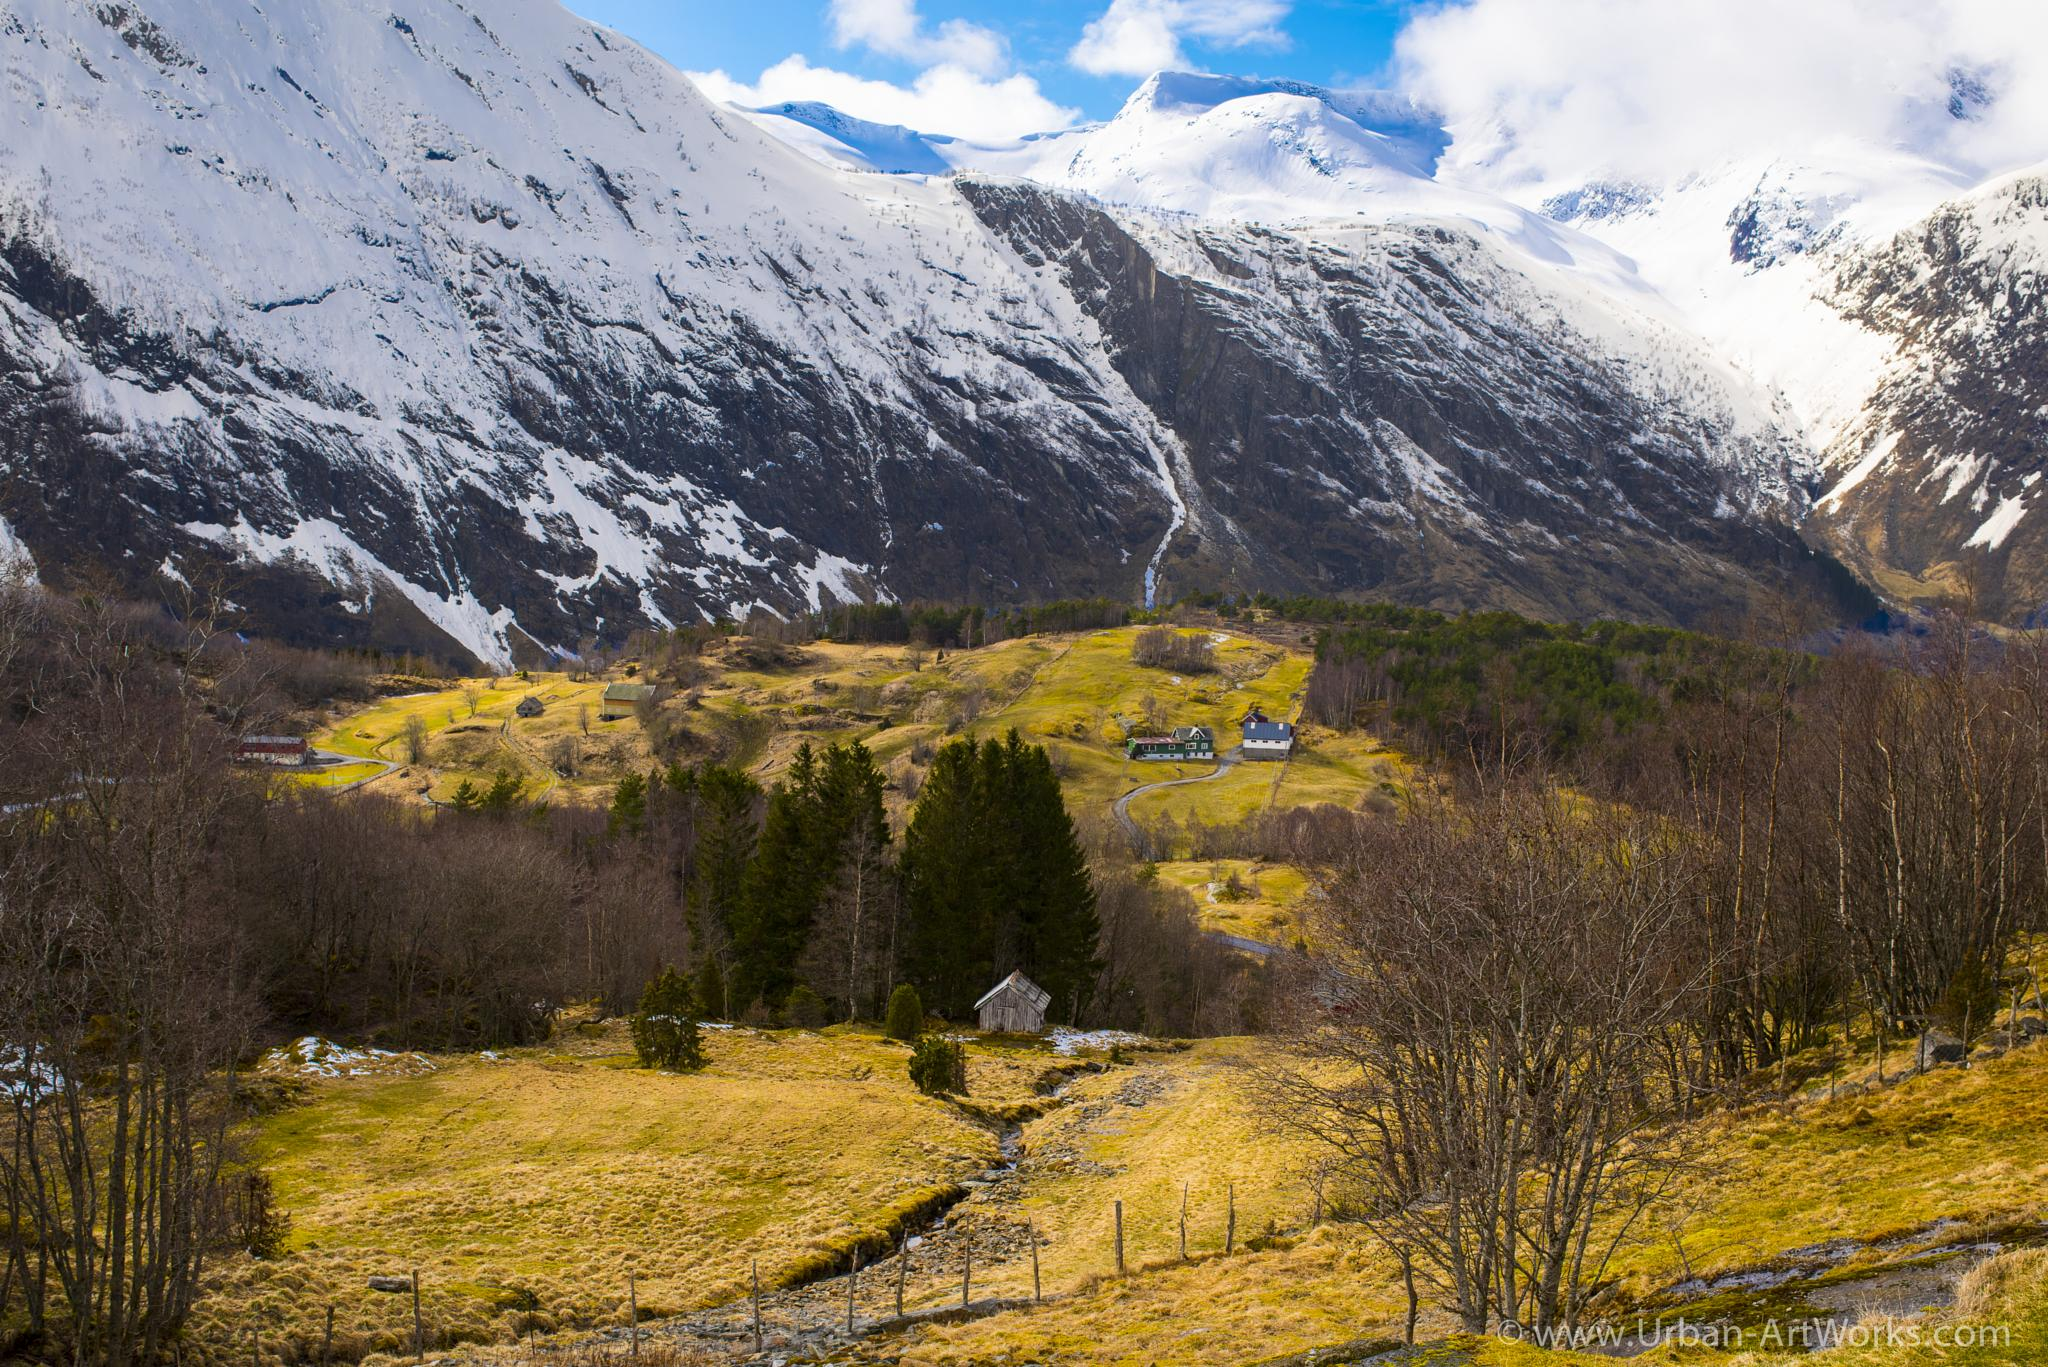 Early Spring in a harsh environment by Ole Morten Eyra